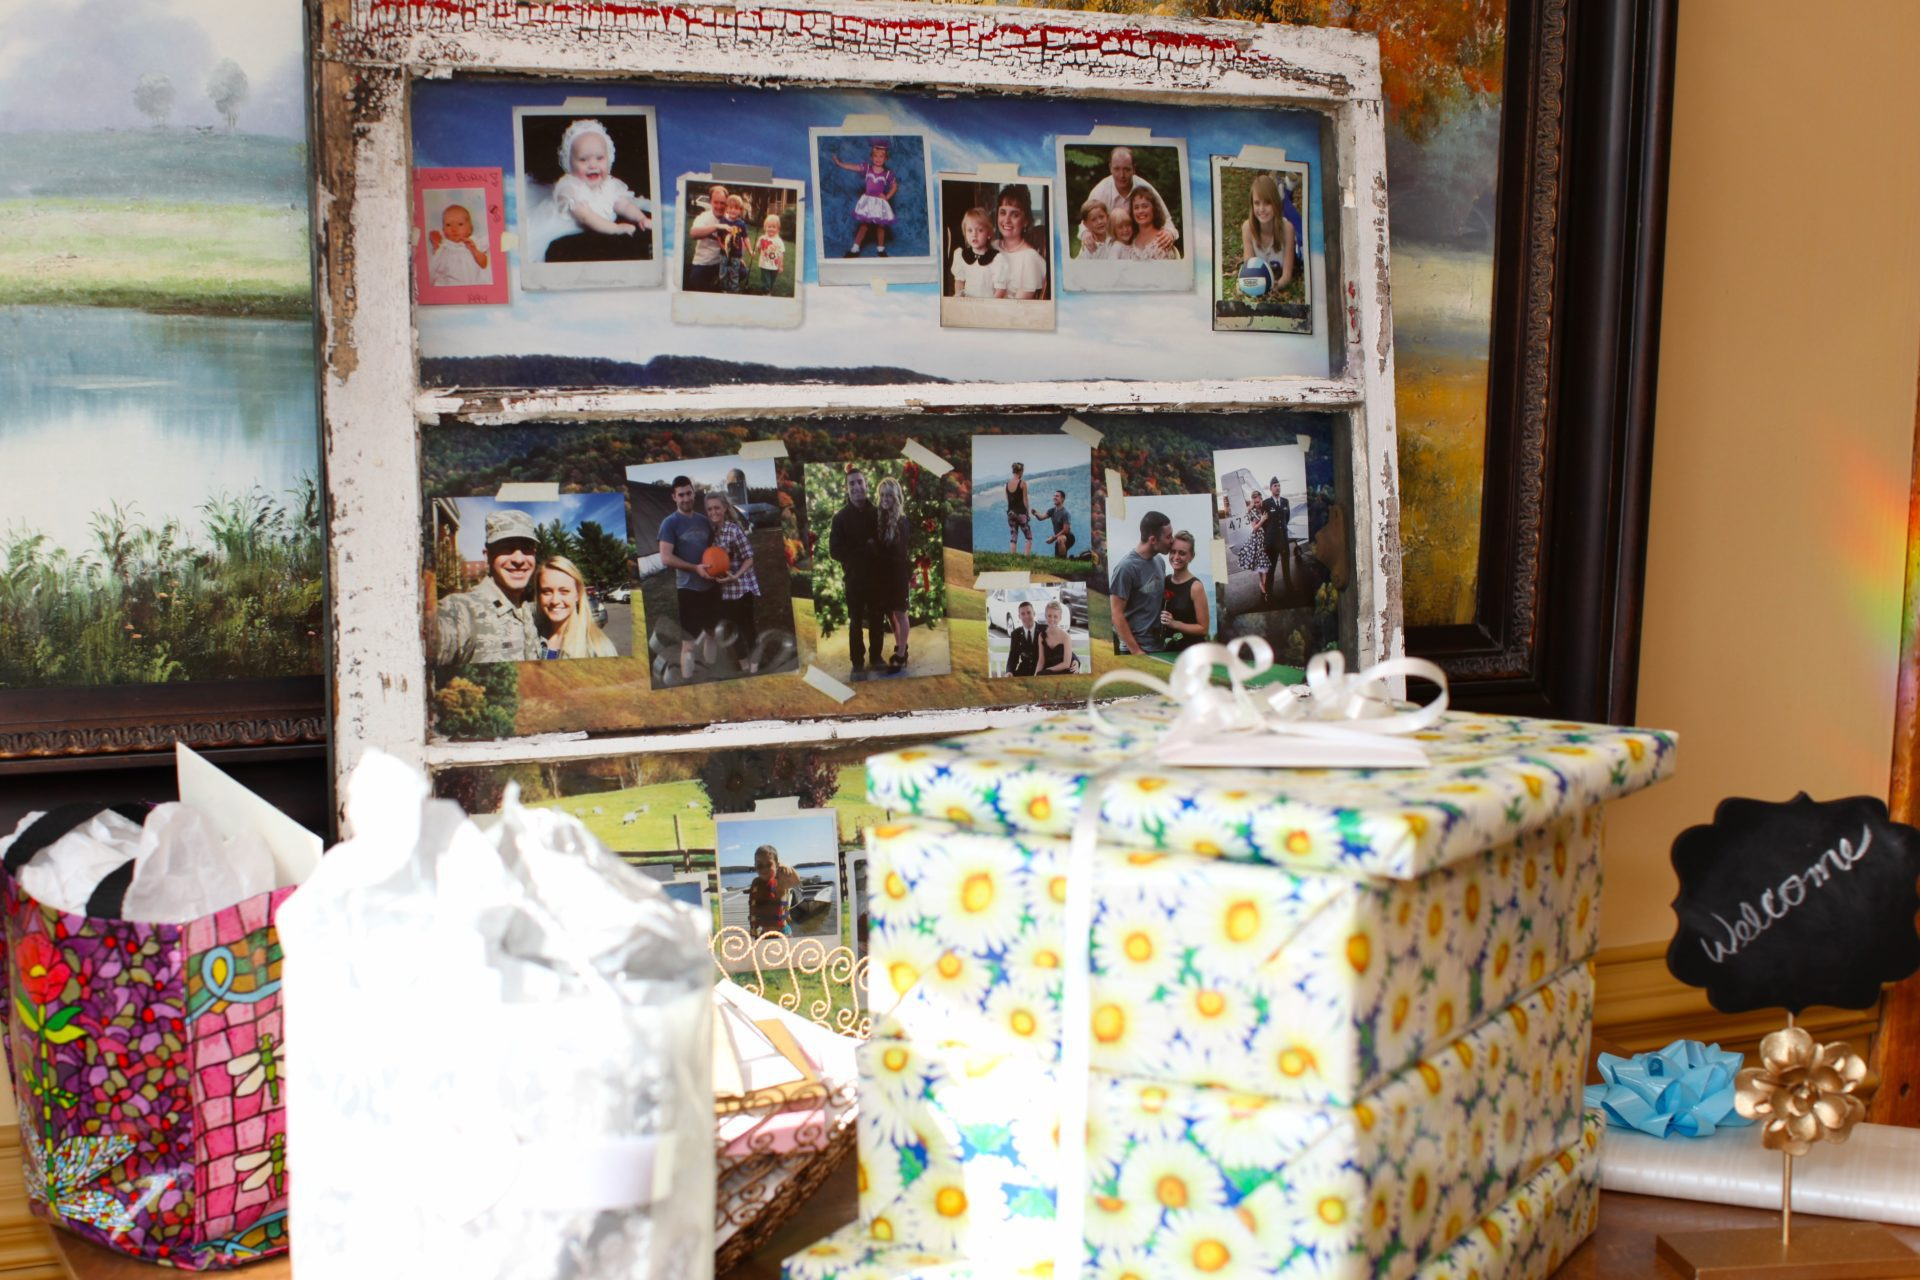 tea party theme wedding rustic window frame with photos of bride and groom